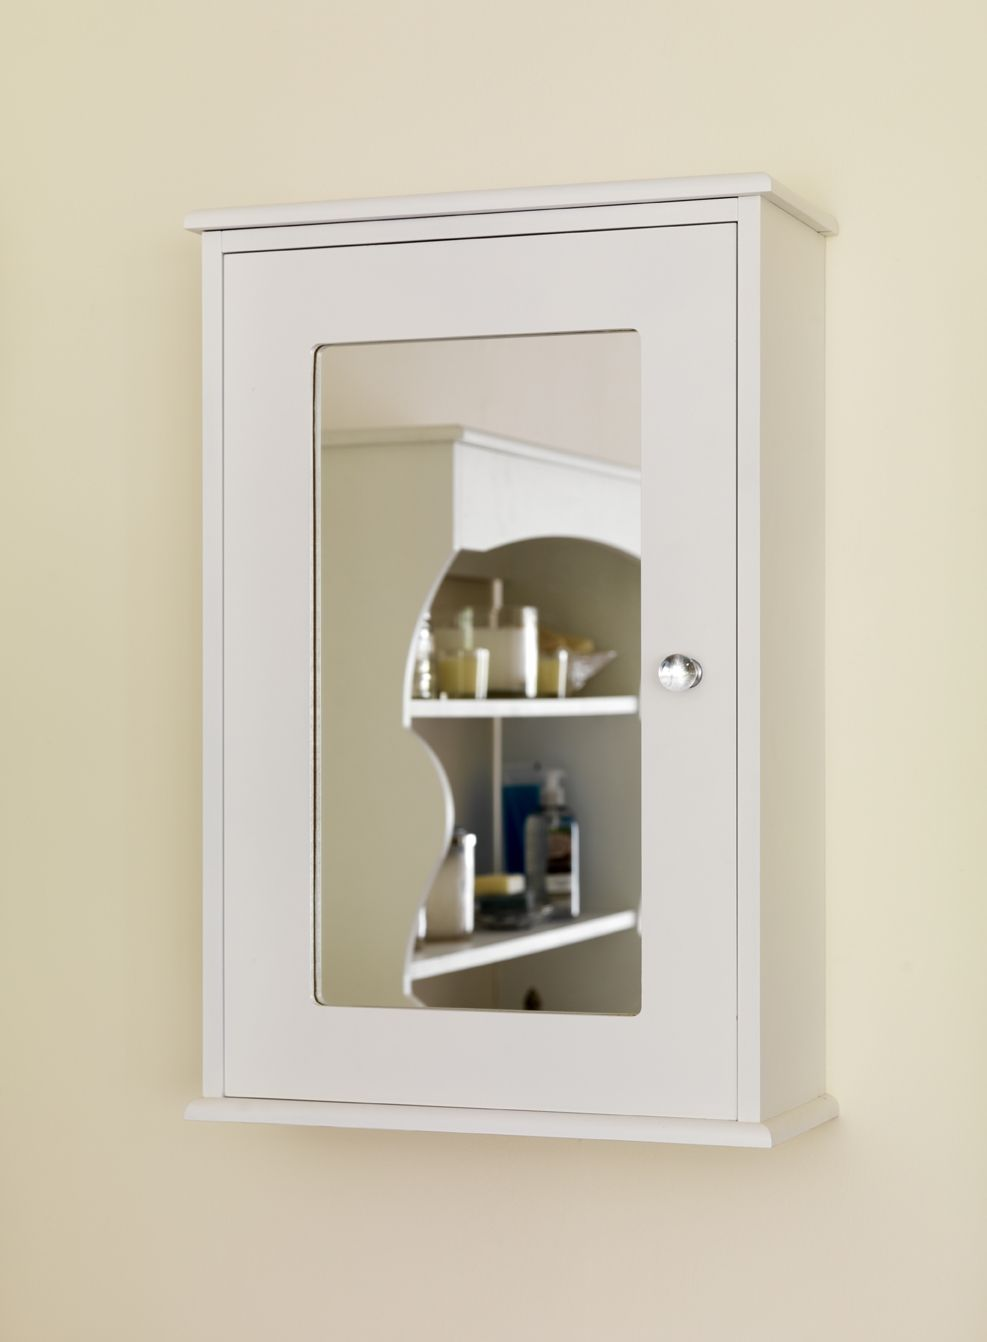 Bathroom Storage Mirror Cabinets | http://drrw.us | Pinterest ...